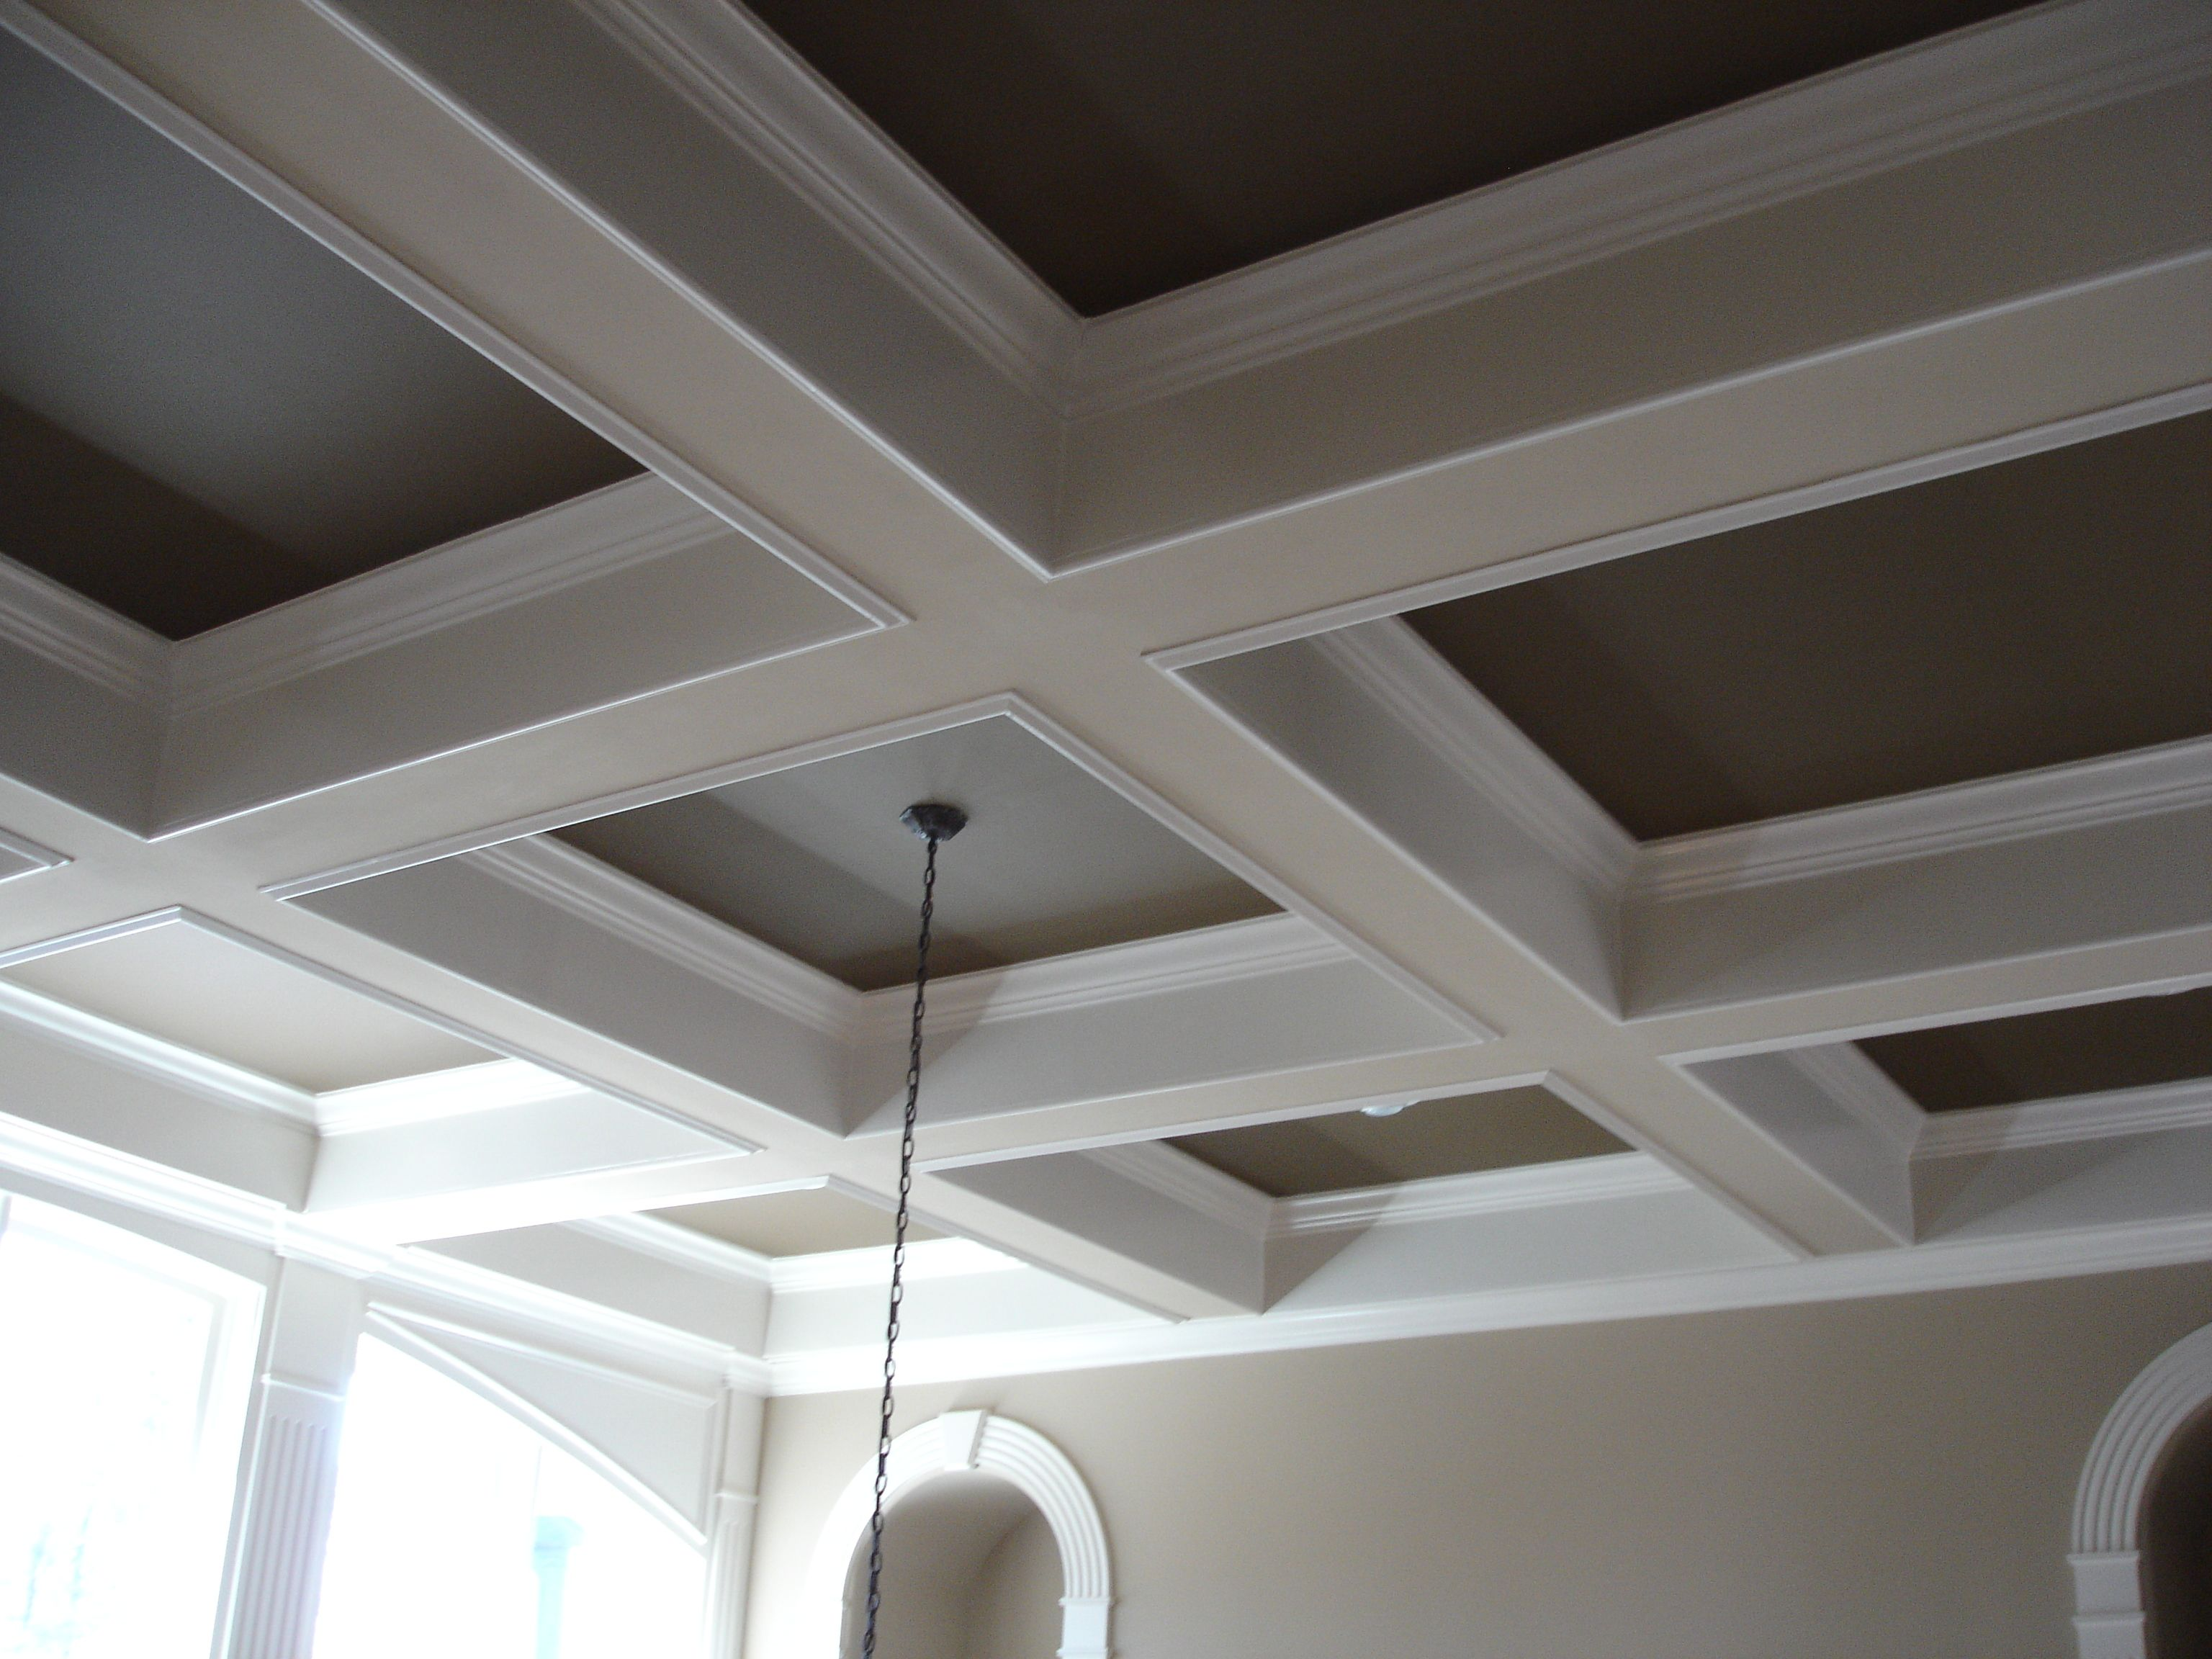 Our Coffered Ceiling System Is Designed To Provide The Classic Look Of A Traditional Coffered Wood Ceiling With The S Home Ceiling Diy Ceiling Coffered Ceiling